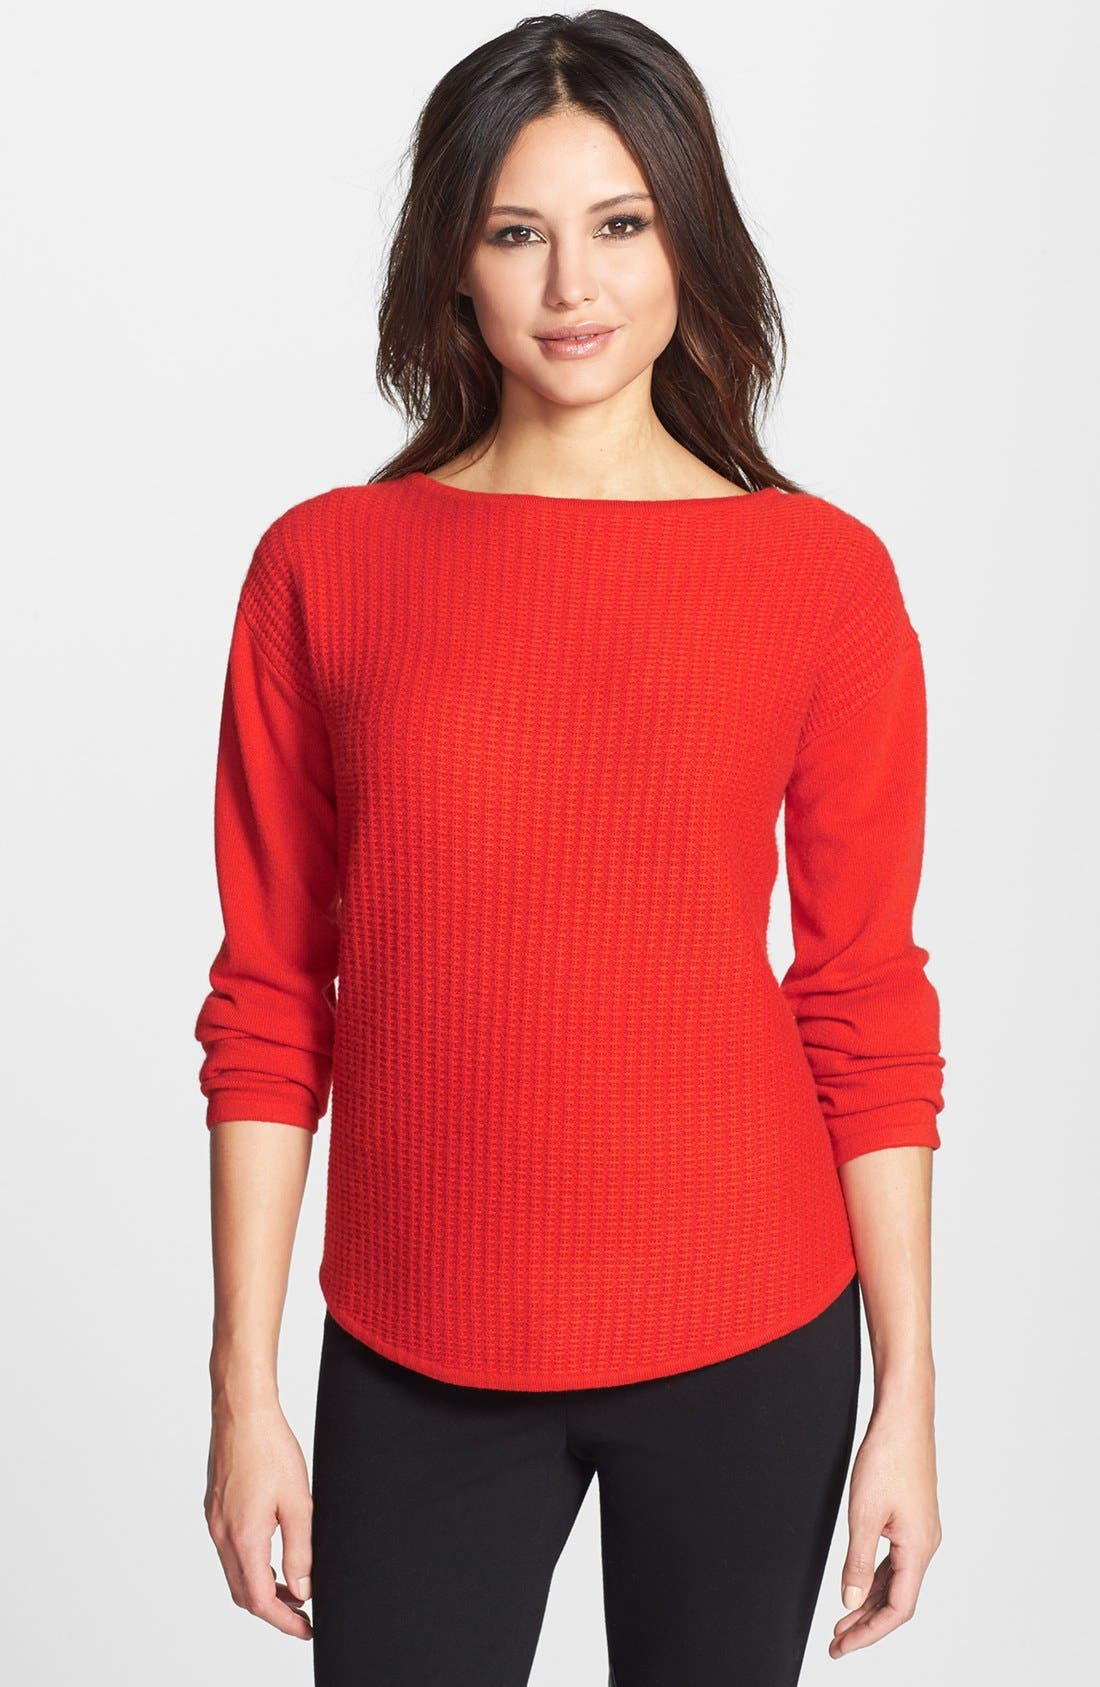 Main Image - Nordstrom Collection Textured Stitch Cashmere Boatneck Sweater